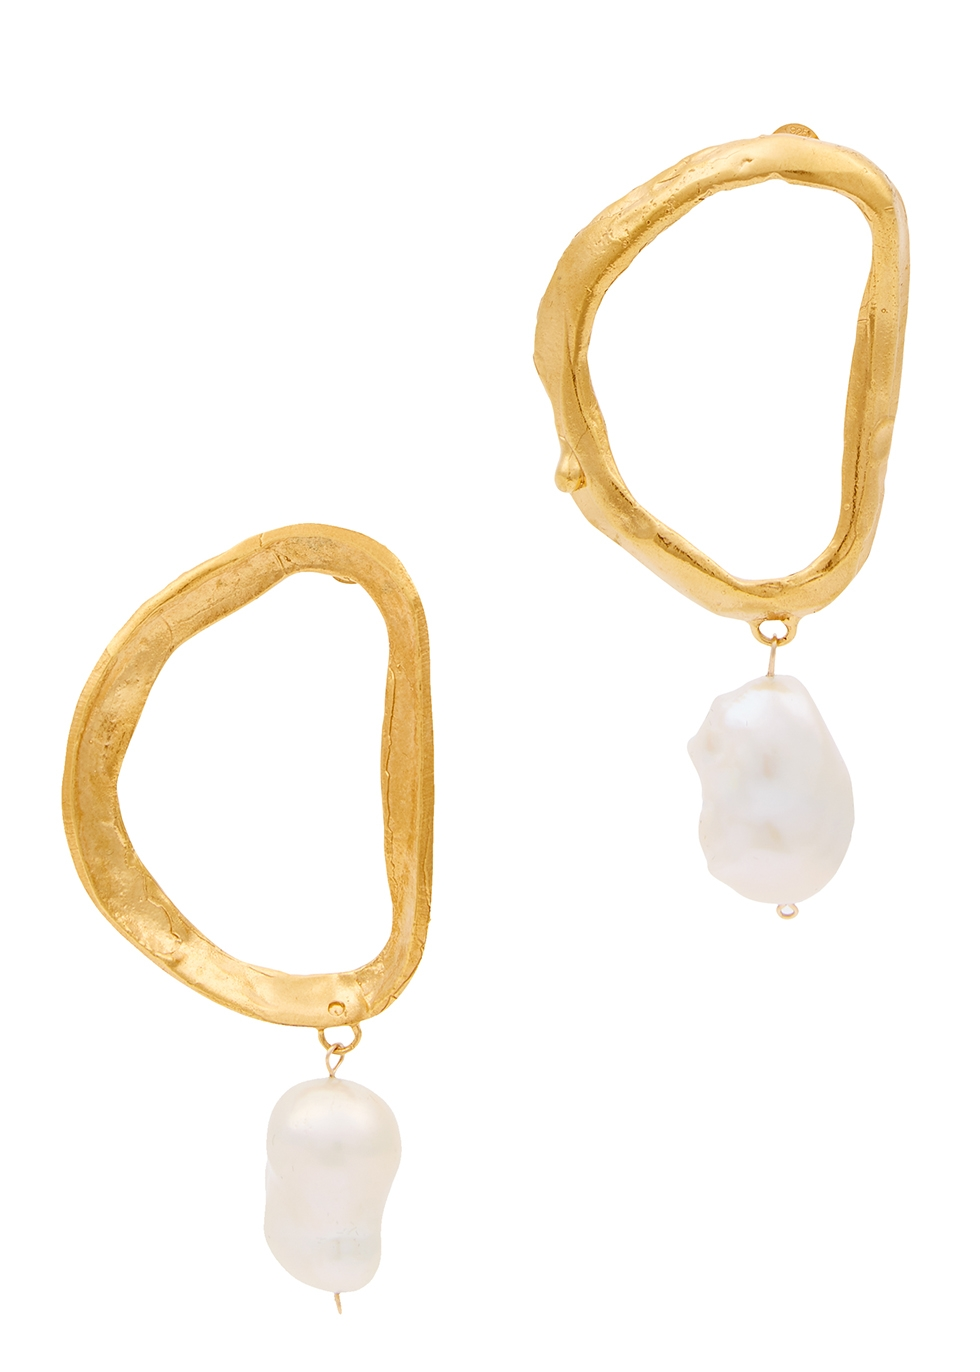 ALIGERHI Dantes Shadow 24Ct Gold-Plated Earrings